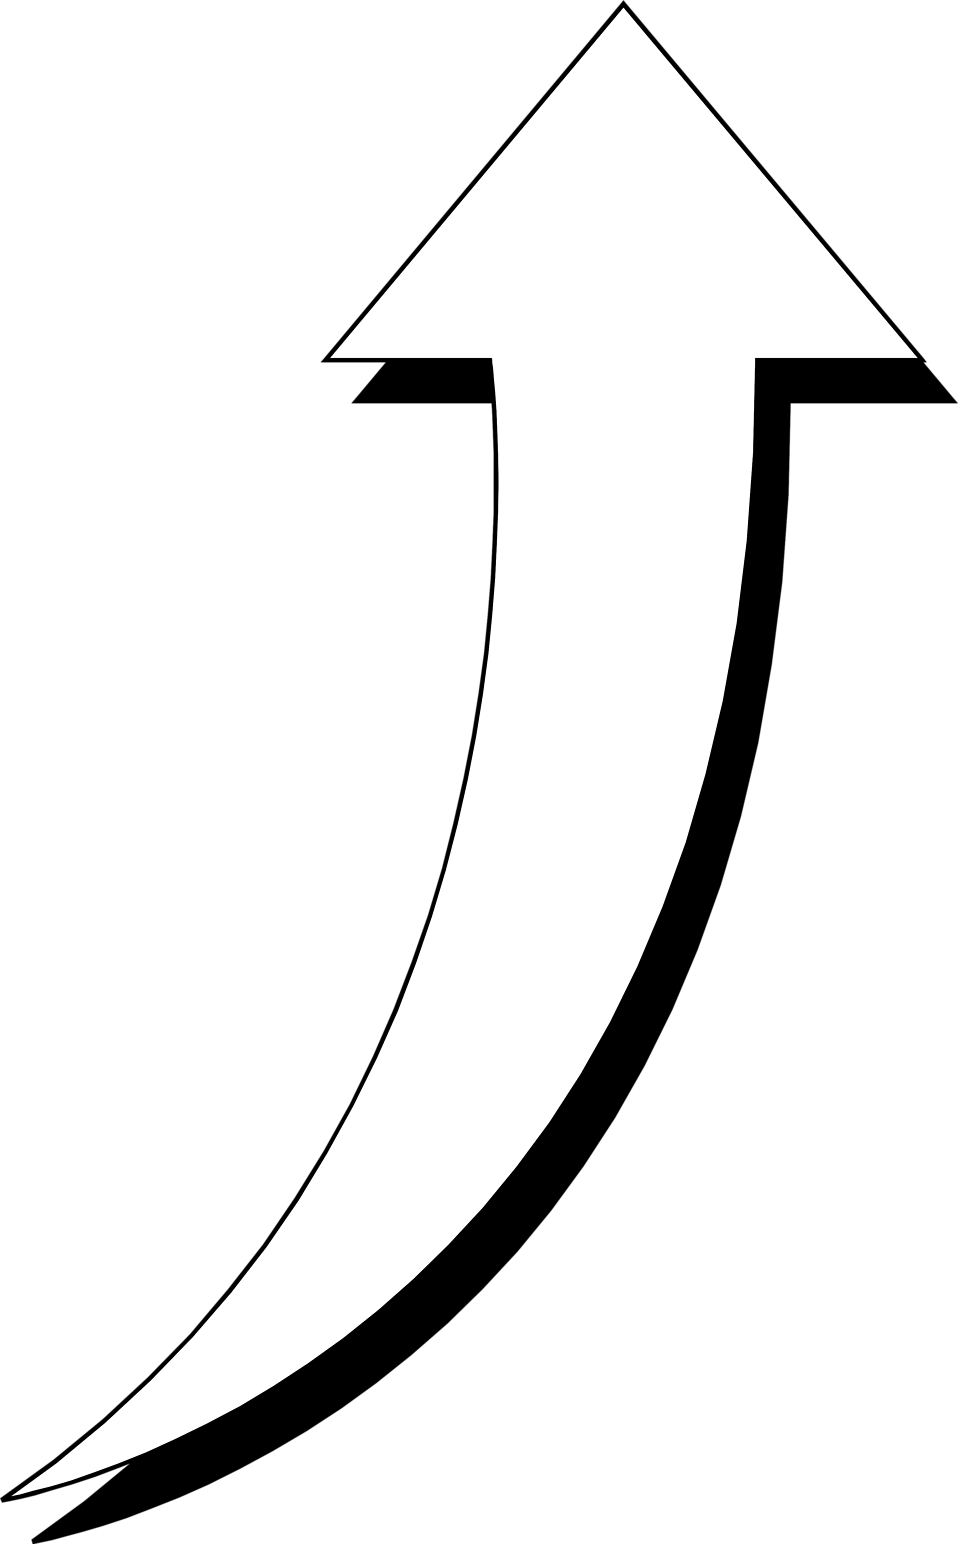 Curved tribal arrow clipart black and white image download Curved Arrow Clipart Black And White - clipartsgram.com image download